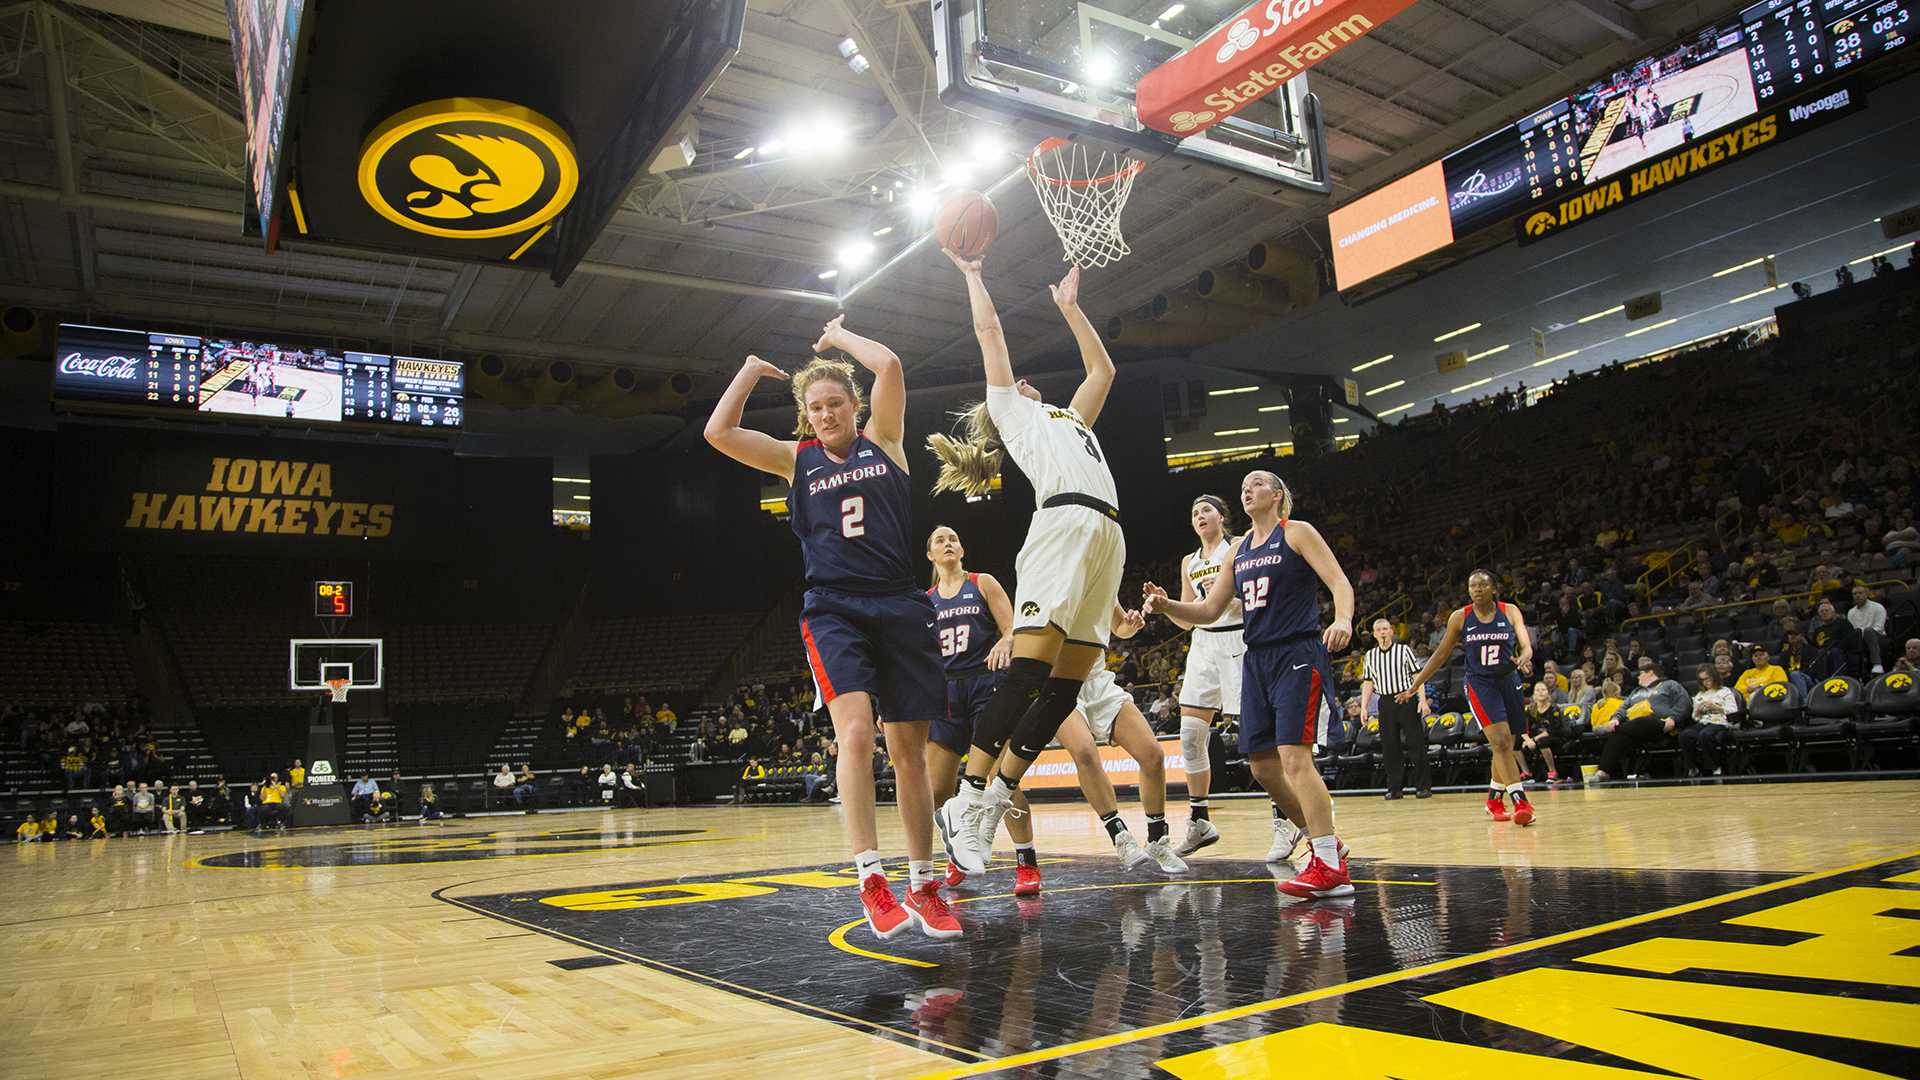 Iowa Makenzie Meyer takes a shot during the Iowa/Samford basketball game at Carver-Hawkeye Arena on Sunday, Dec. 3, 2017. The Hawkeyes defeated the Bulldogs, 80-59. (Lily Smith/The Daily Iowan)